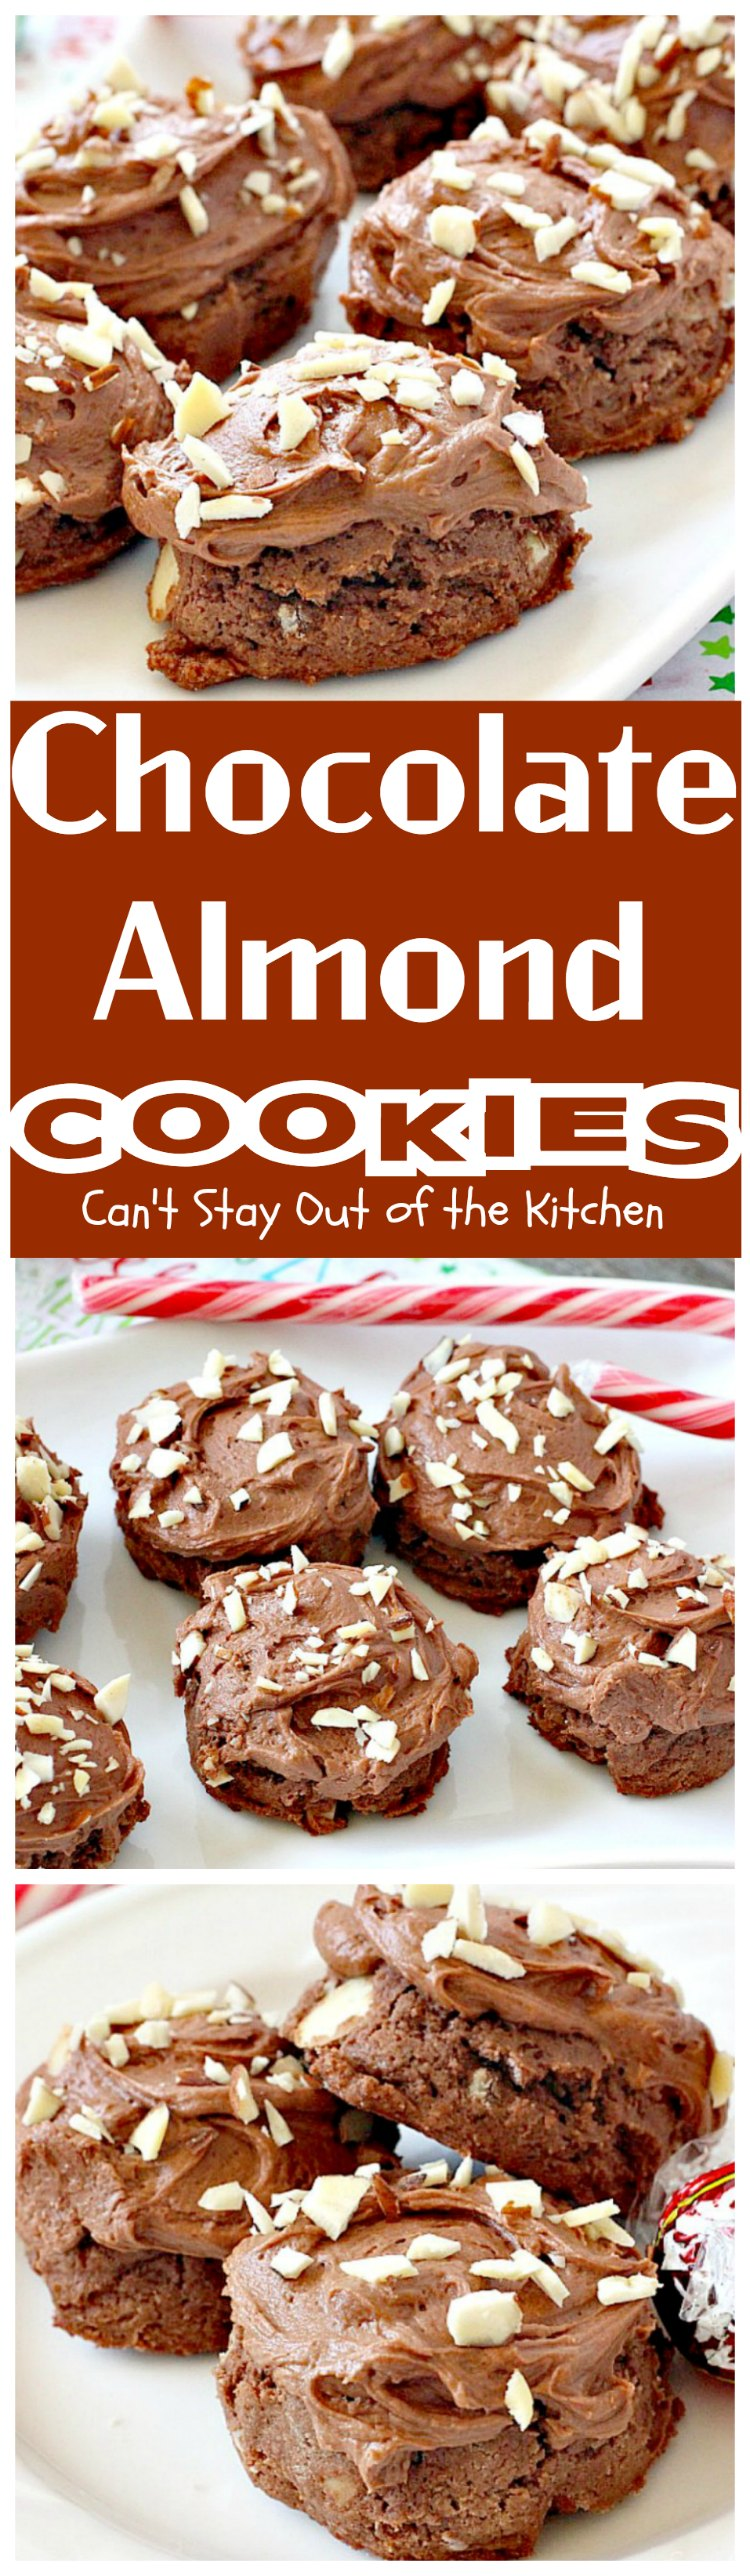 Chocolate Almond Cookies - Can't Stay Out of the Kitchen